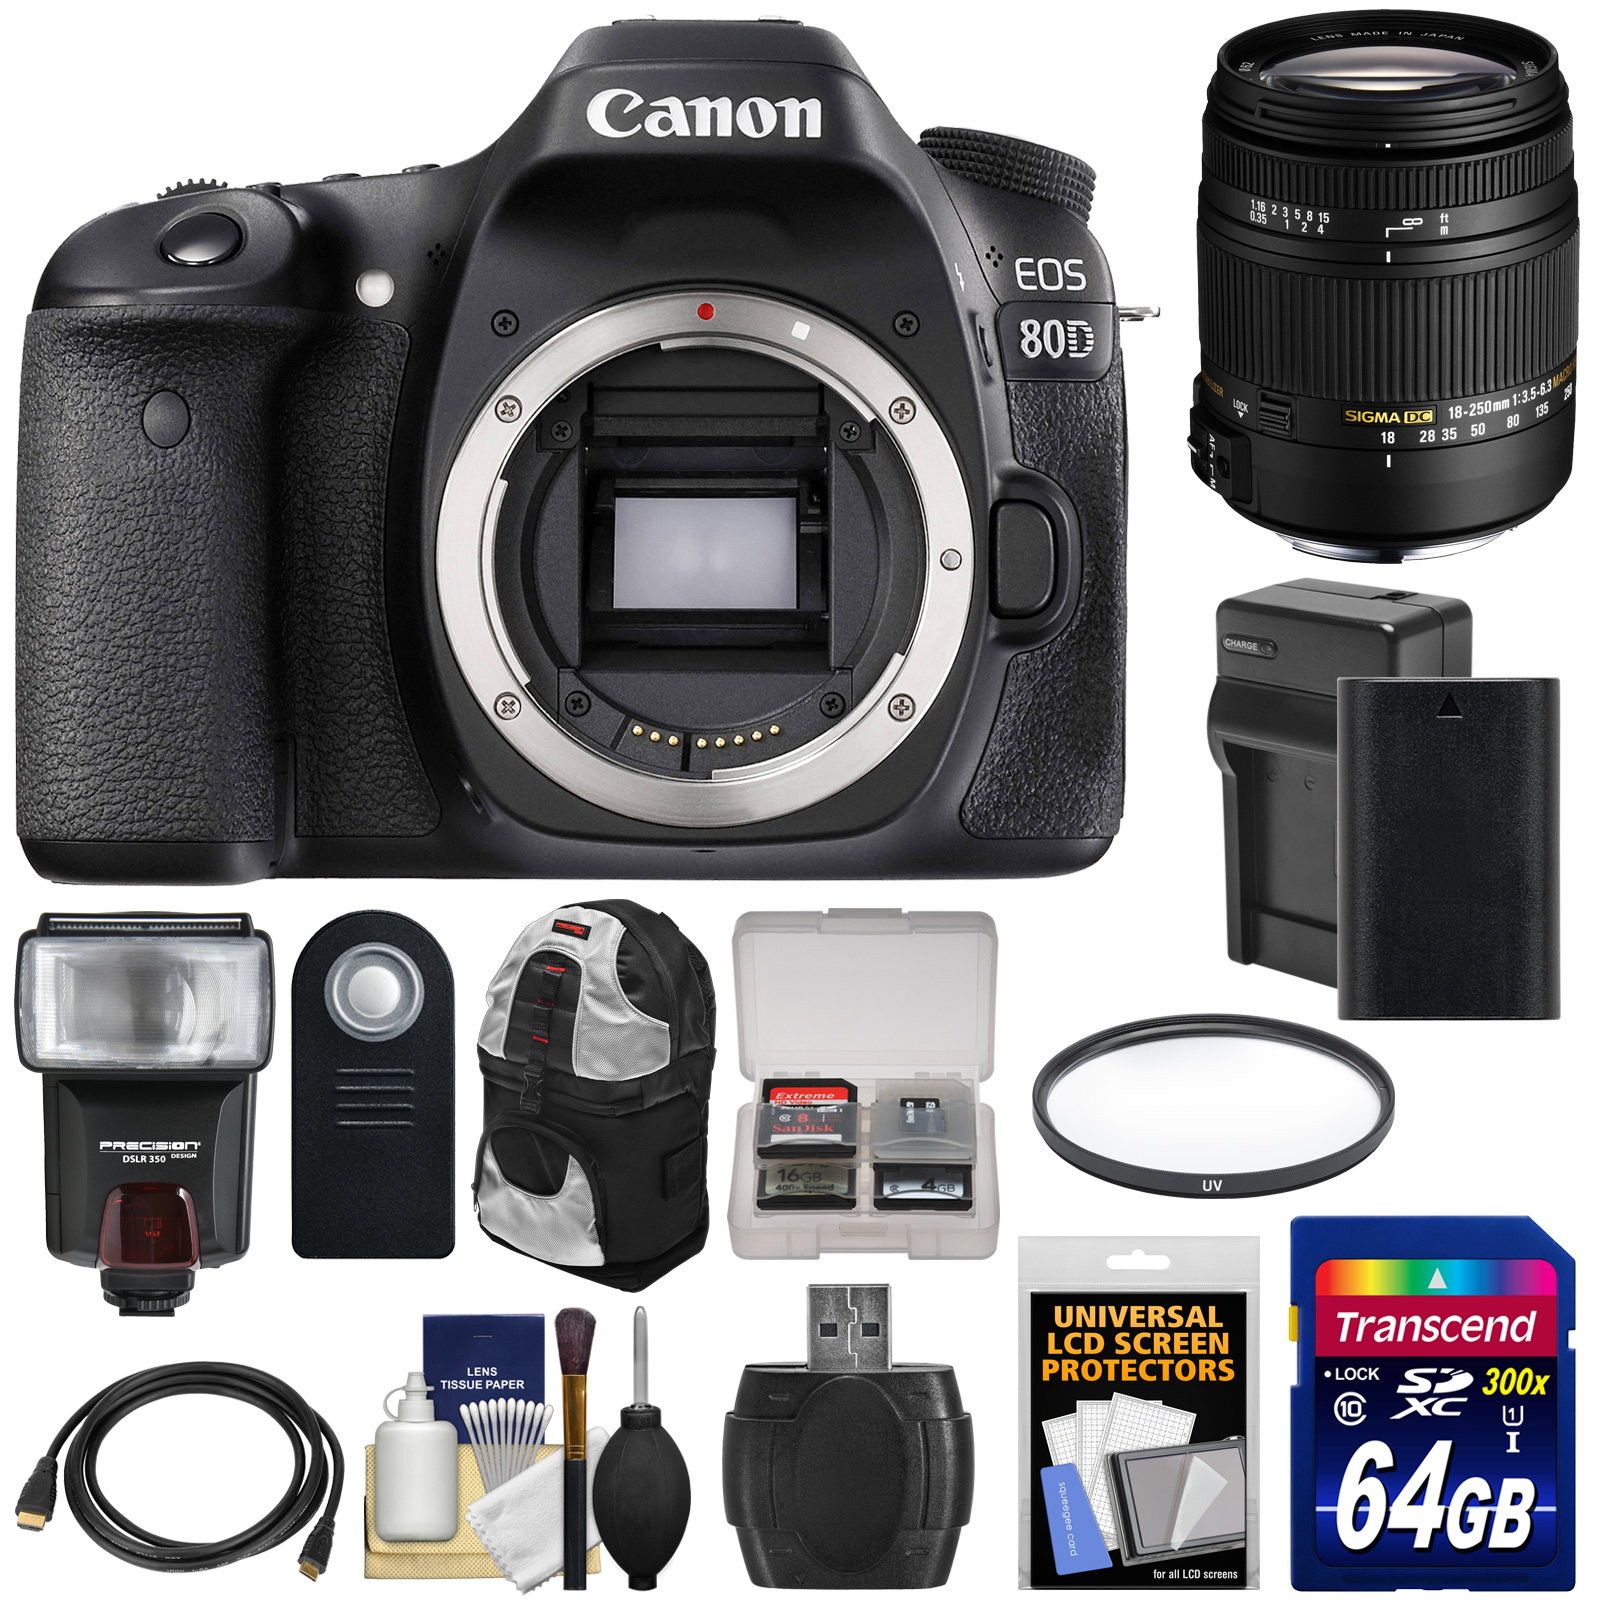 Canon EOS 80D Wi-Fi Digital SLR Camera Body with Sigma 18-250mm OS Lens + 64GB Card + Battery & Charger +... by Canon